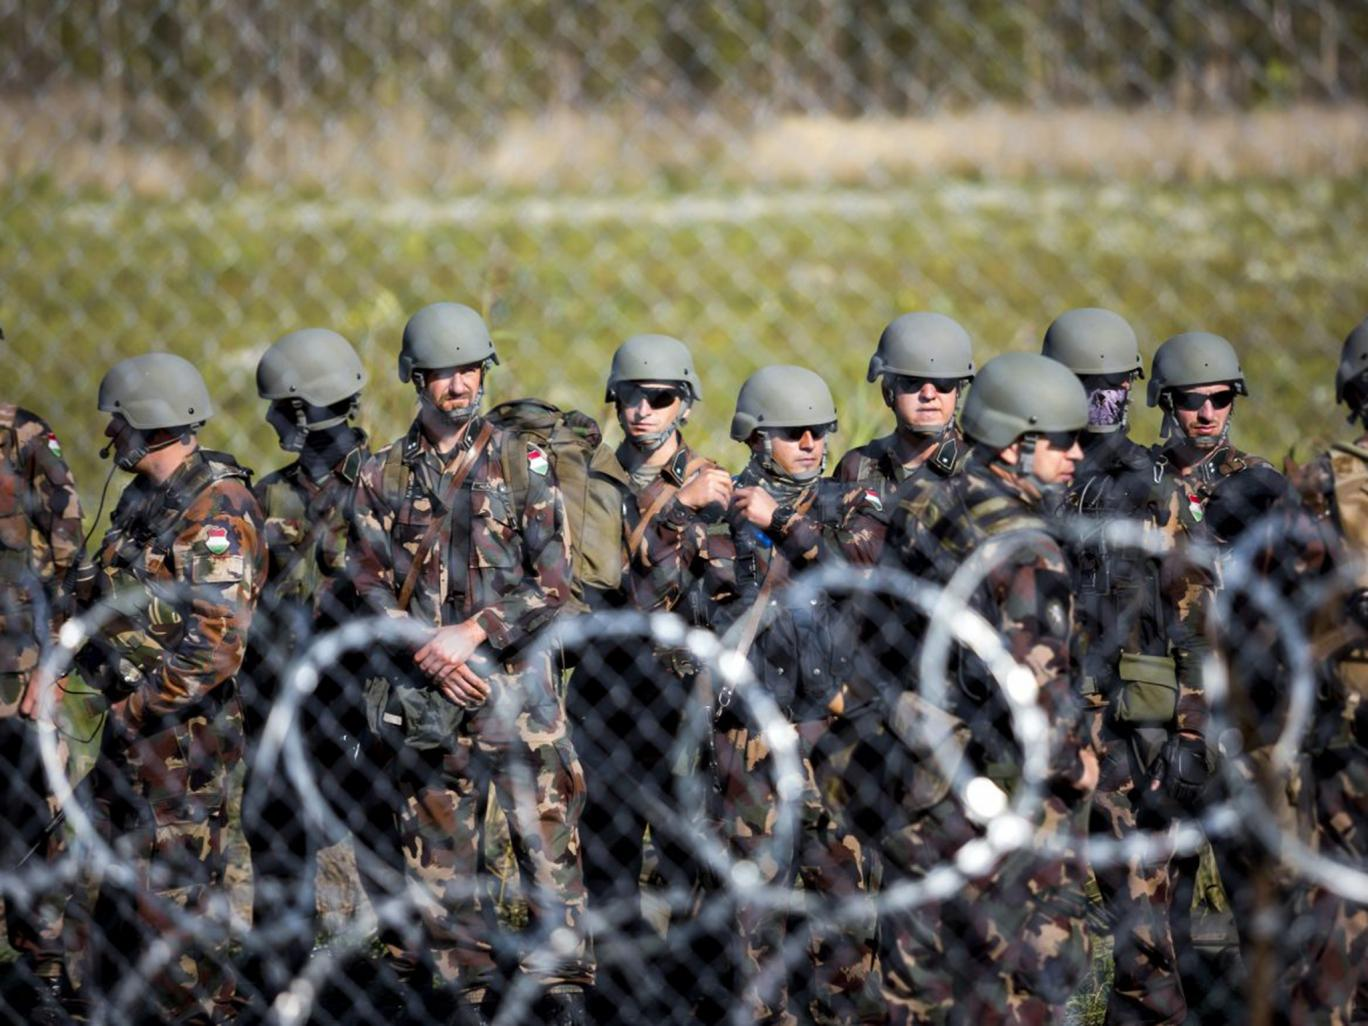 Hungary closes its borders